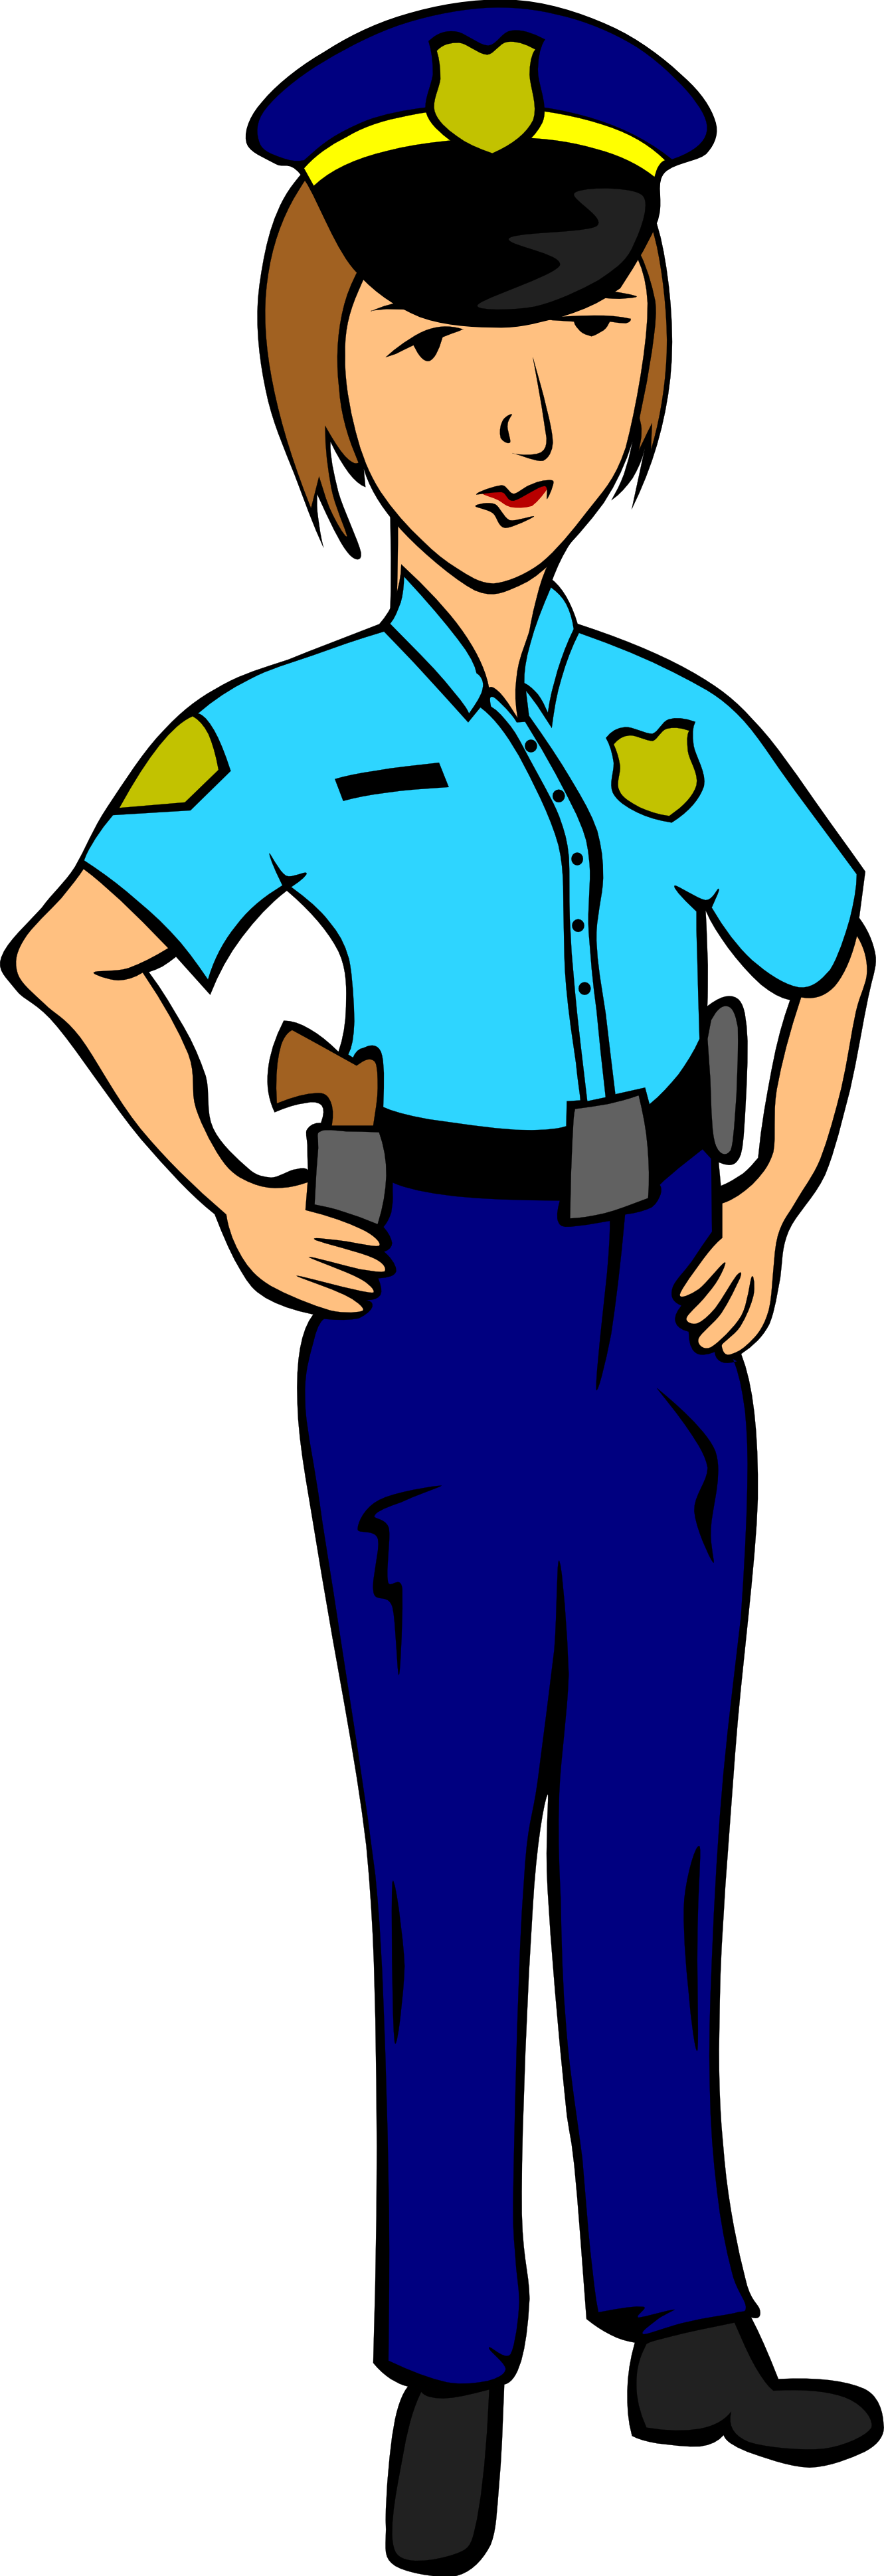 Handcuff clipart police stuff. Images clip art policeman